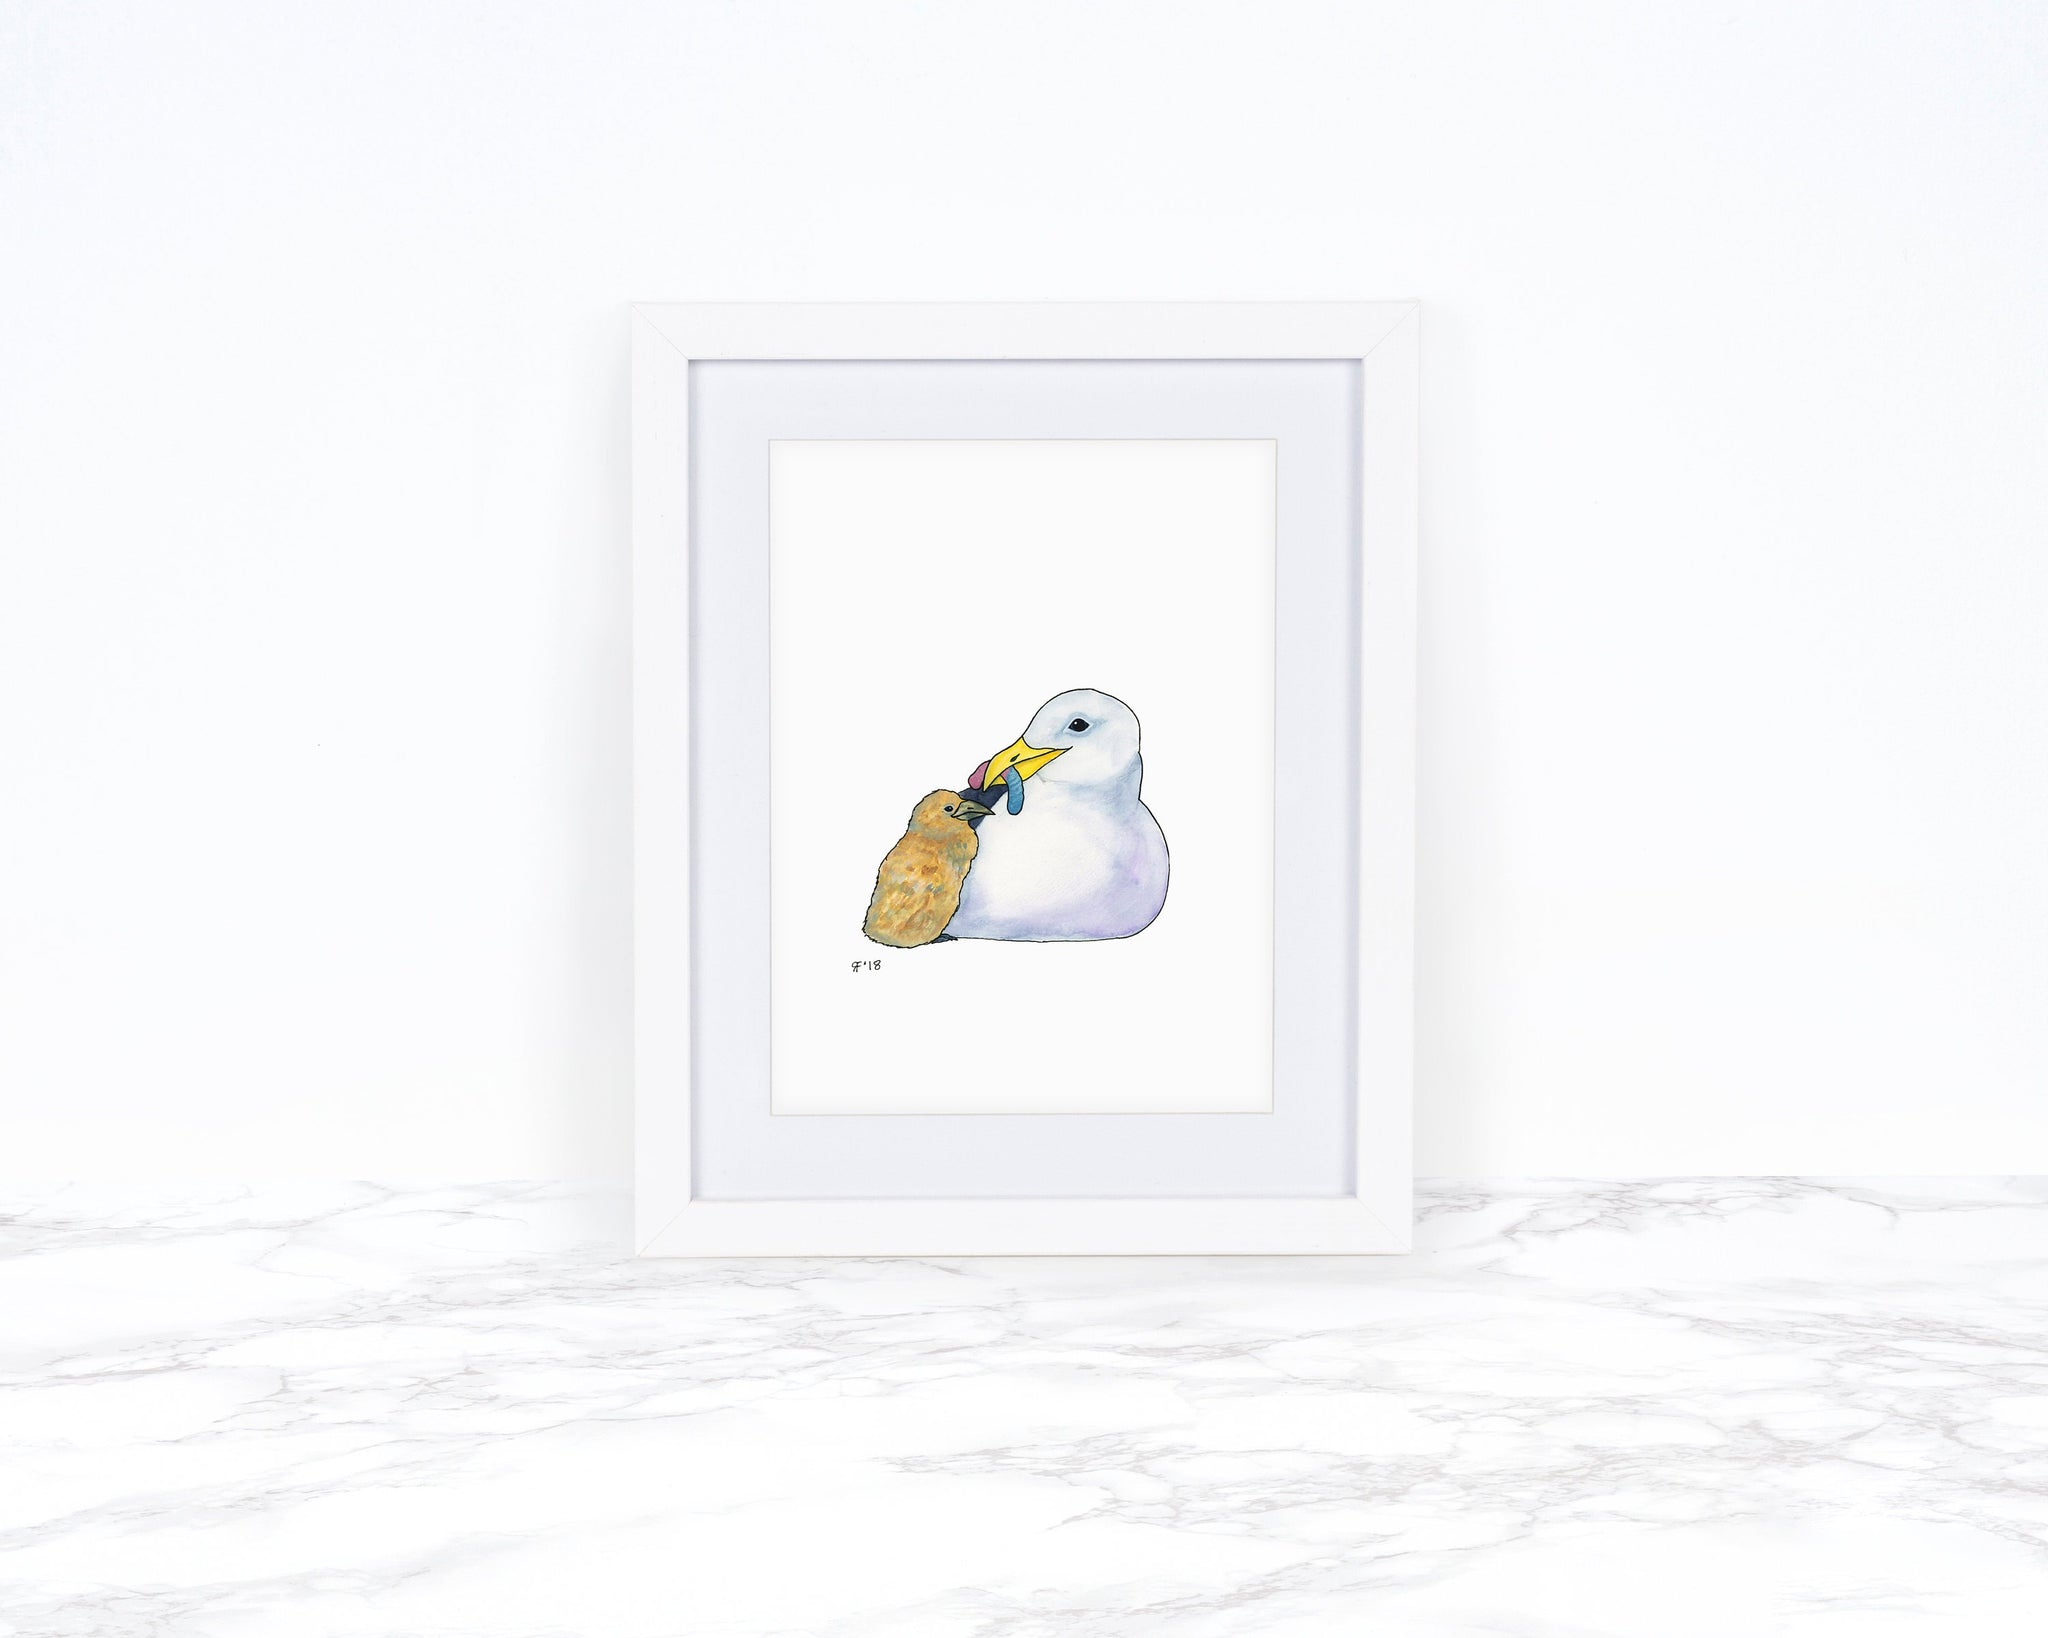 Seagull Art Print With Gummy Worm, Coastal Wall Art, Beach Decor, Kitchen Decor, Whimsical Art Print, Whimsical Animal Art Print,